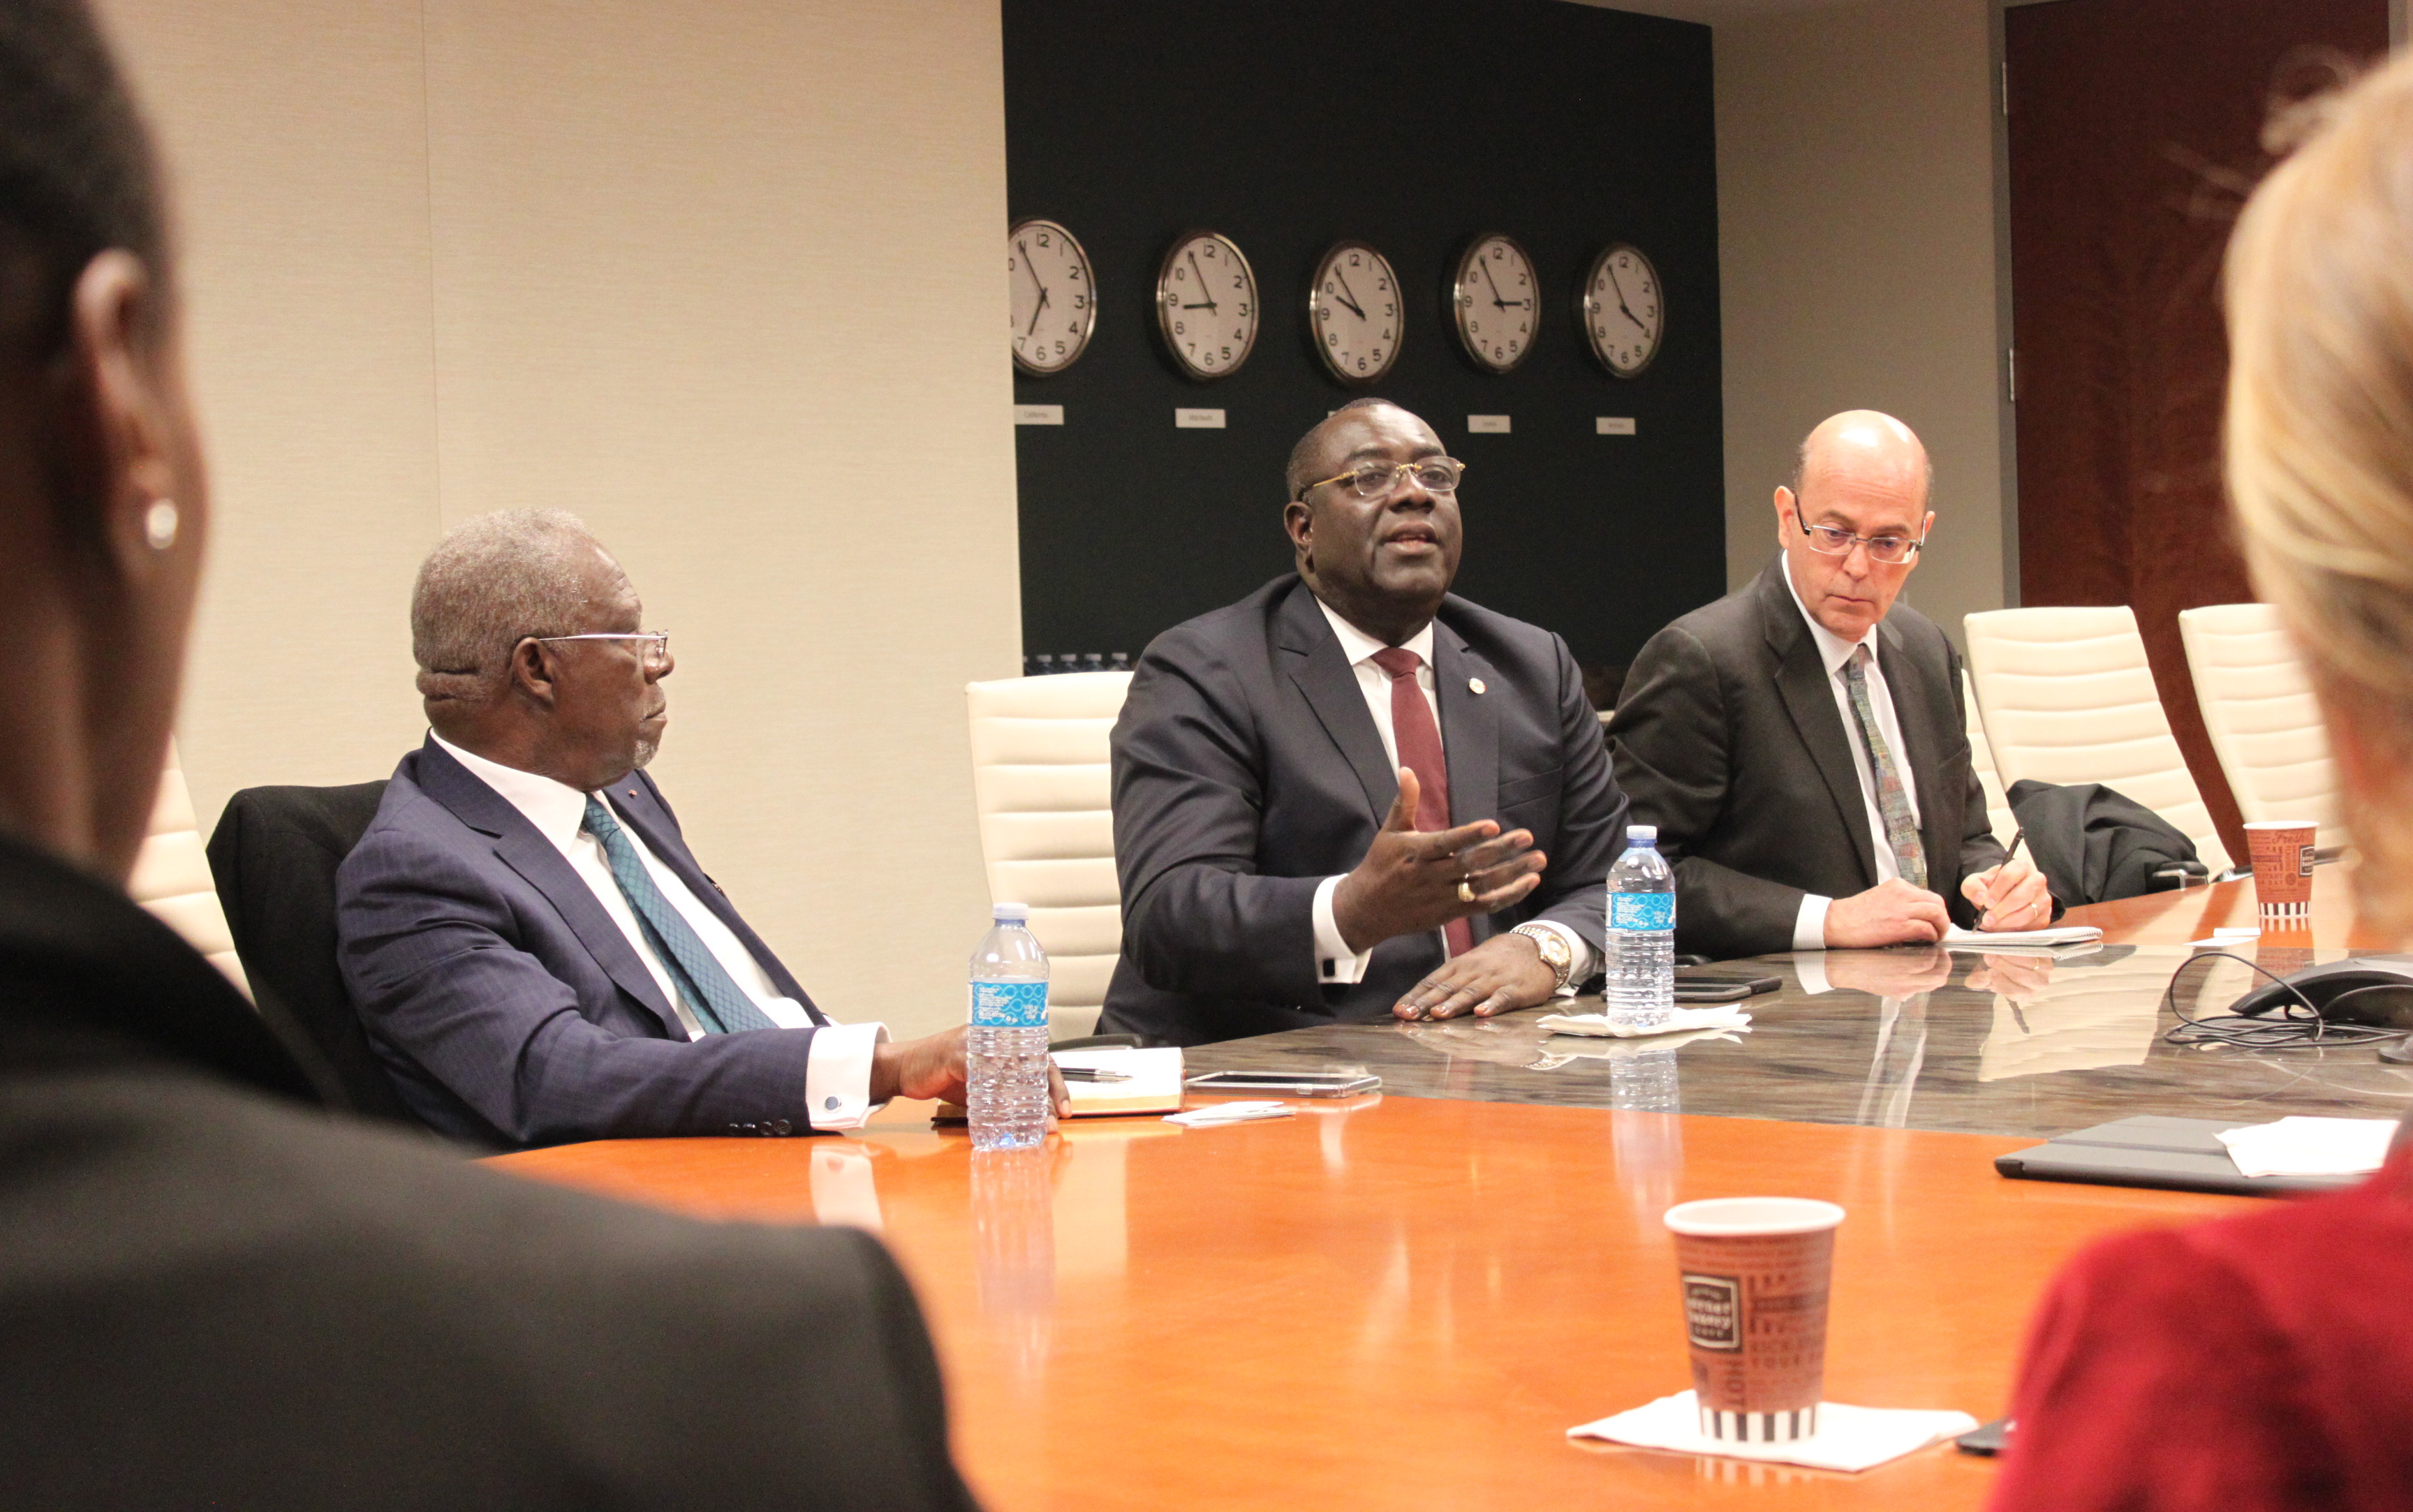 Haiti Foreign Minister Bocchit Edmond (black man wearing business suit) sits at conference table with two other men wearing business suits, wall full of clocks in background